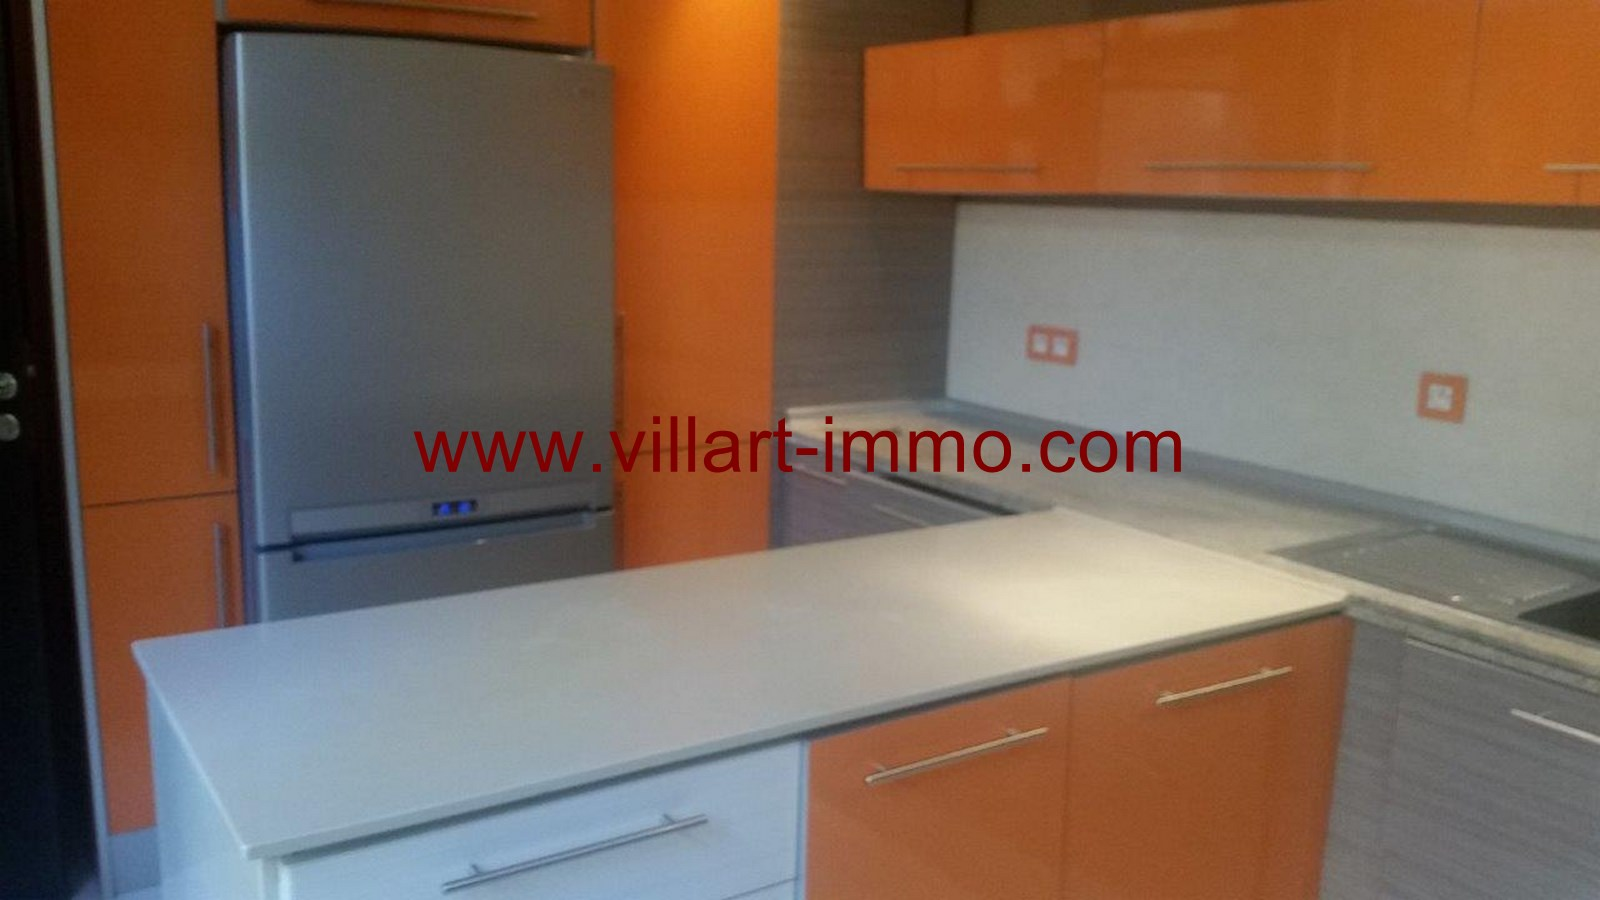 9-To Let-Villa-Furnished-Tangier-kitchen-LSTV986-Villart Immo